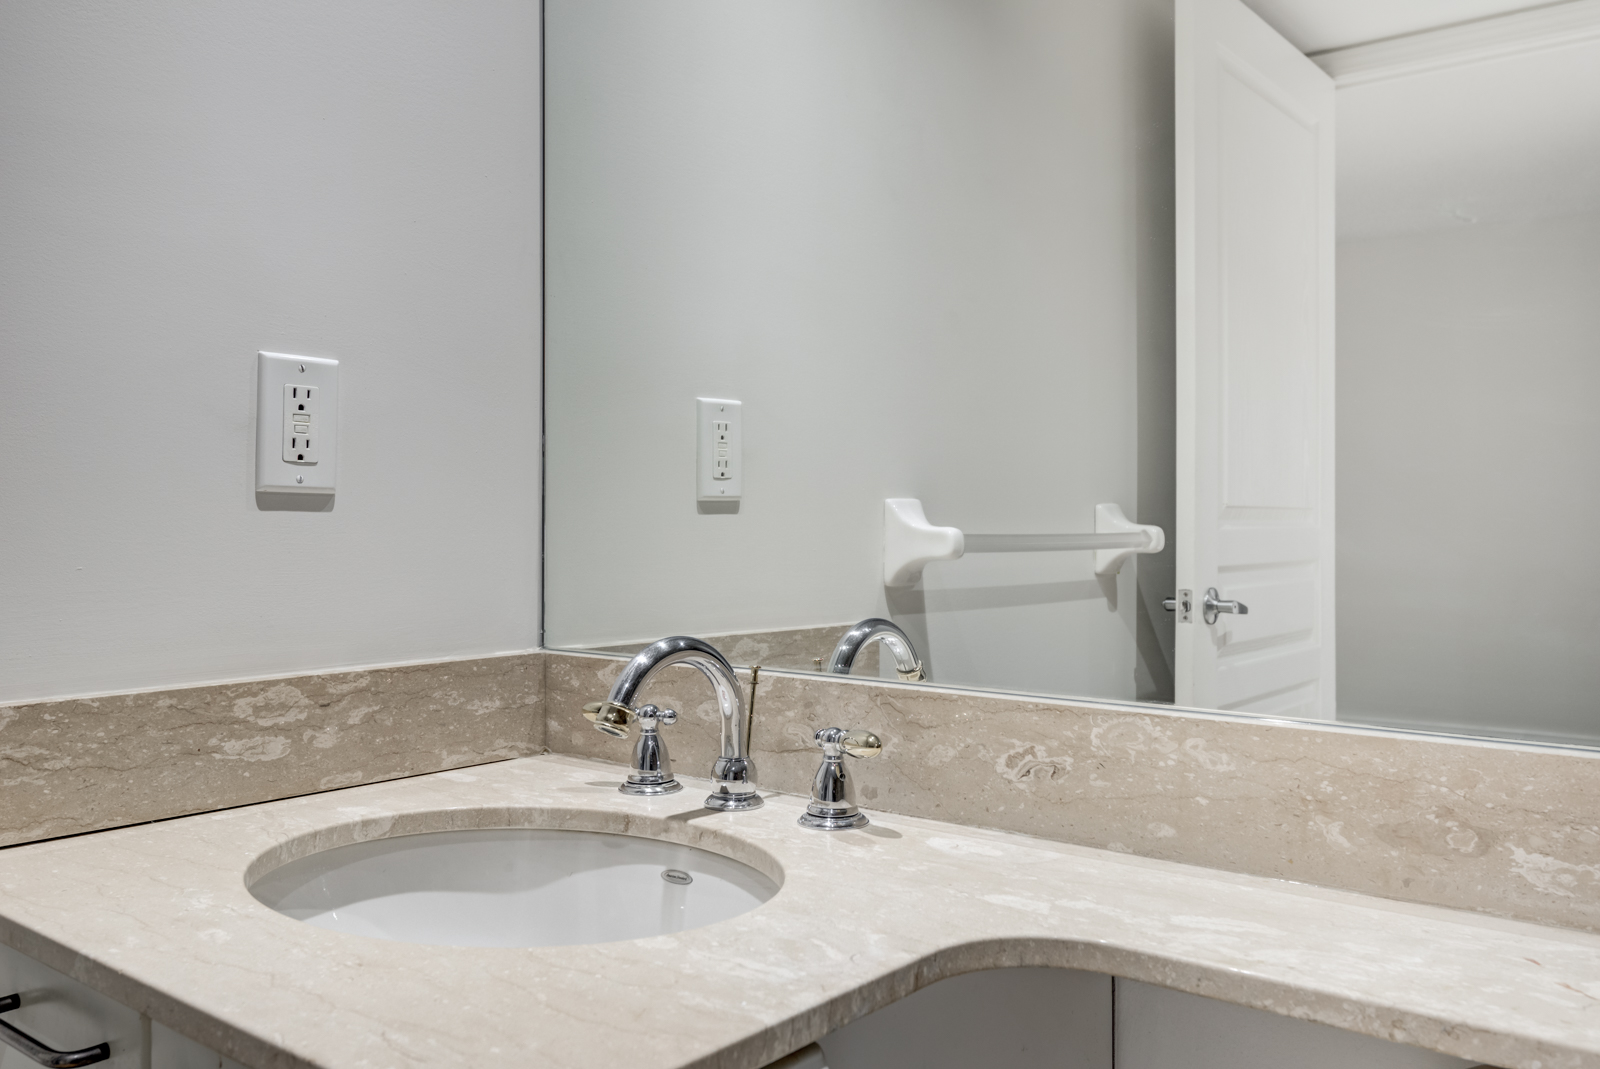 Close up of bathroom sink with circular bowl and silver faucet.